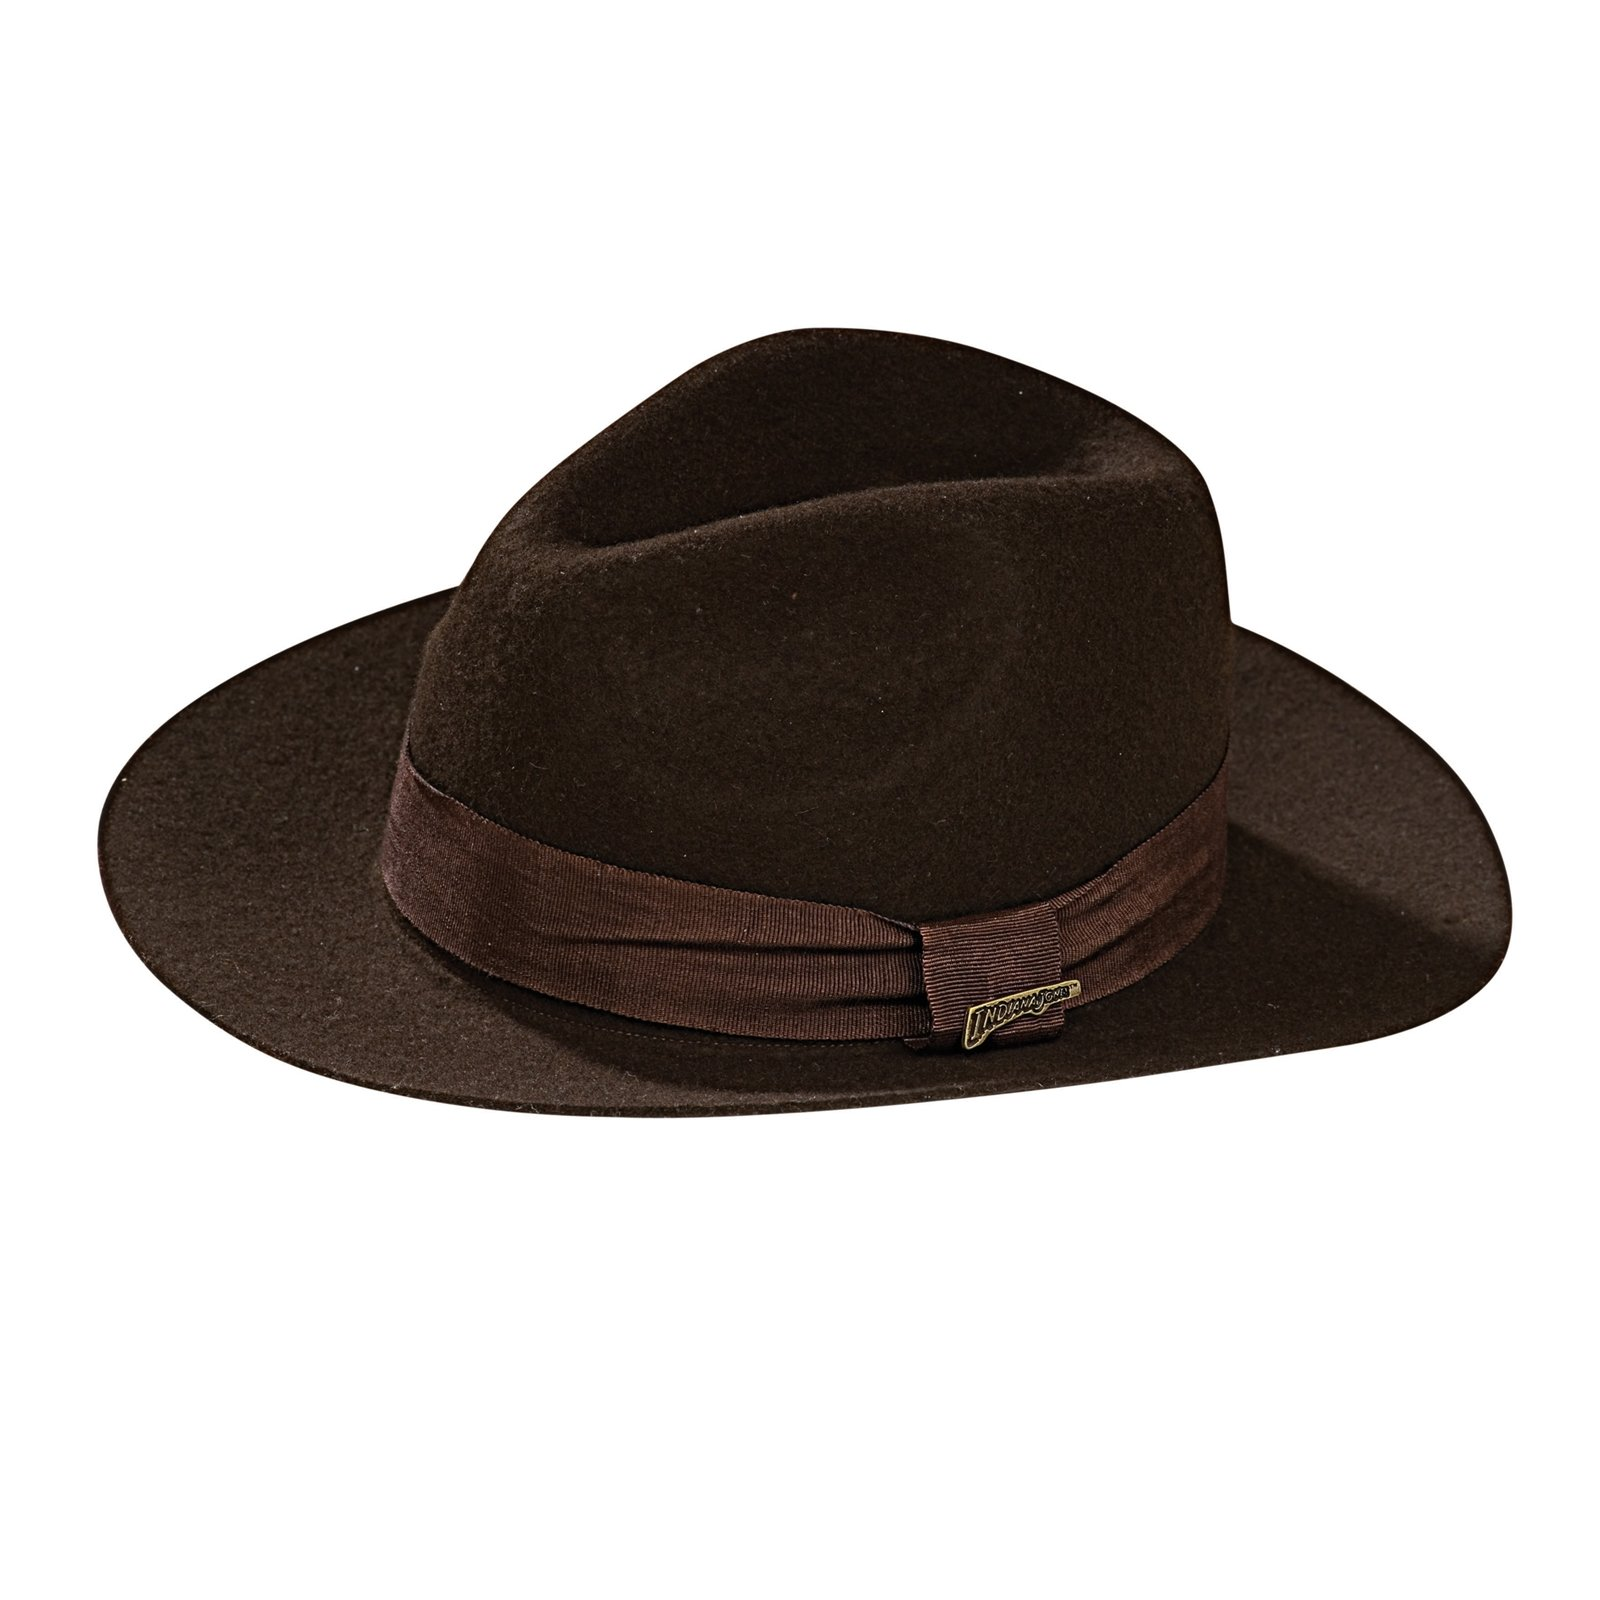 Indiana Jones Deluxe Hat Adult